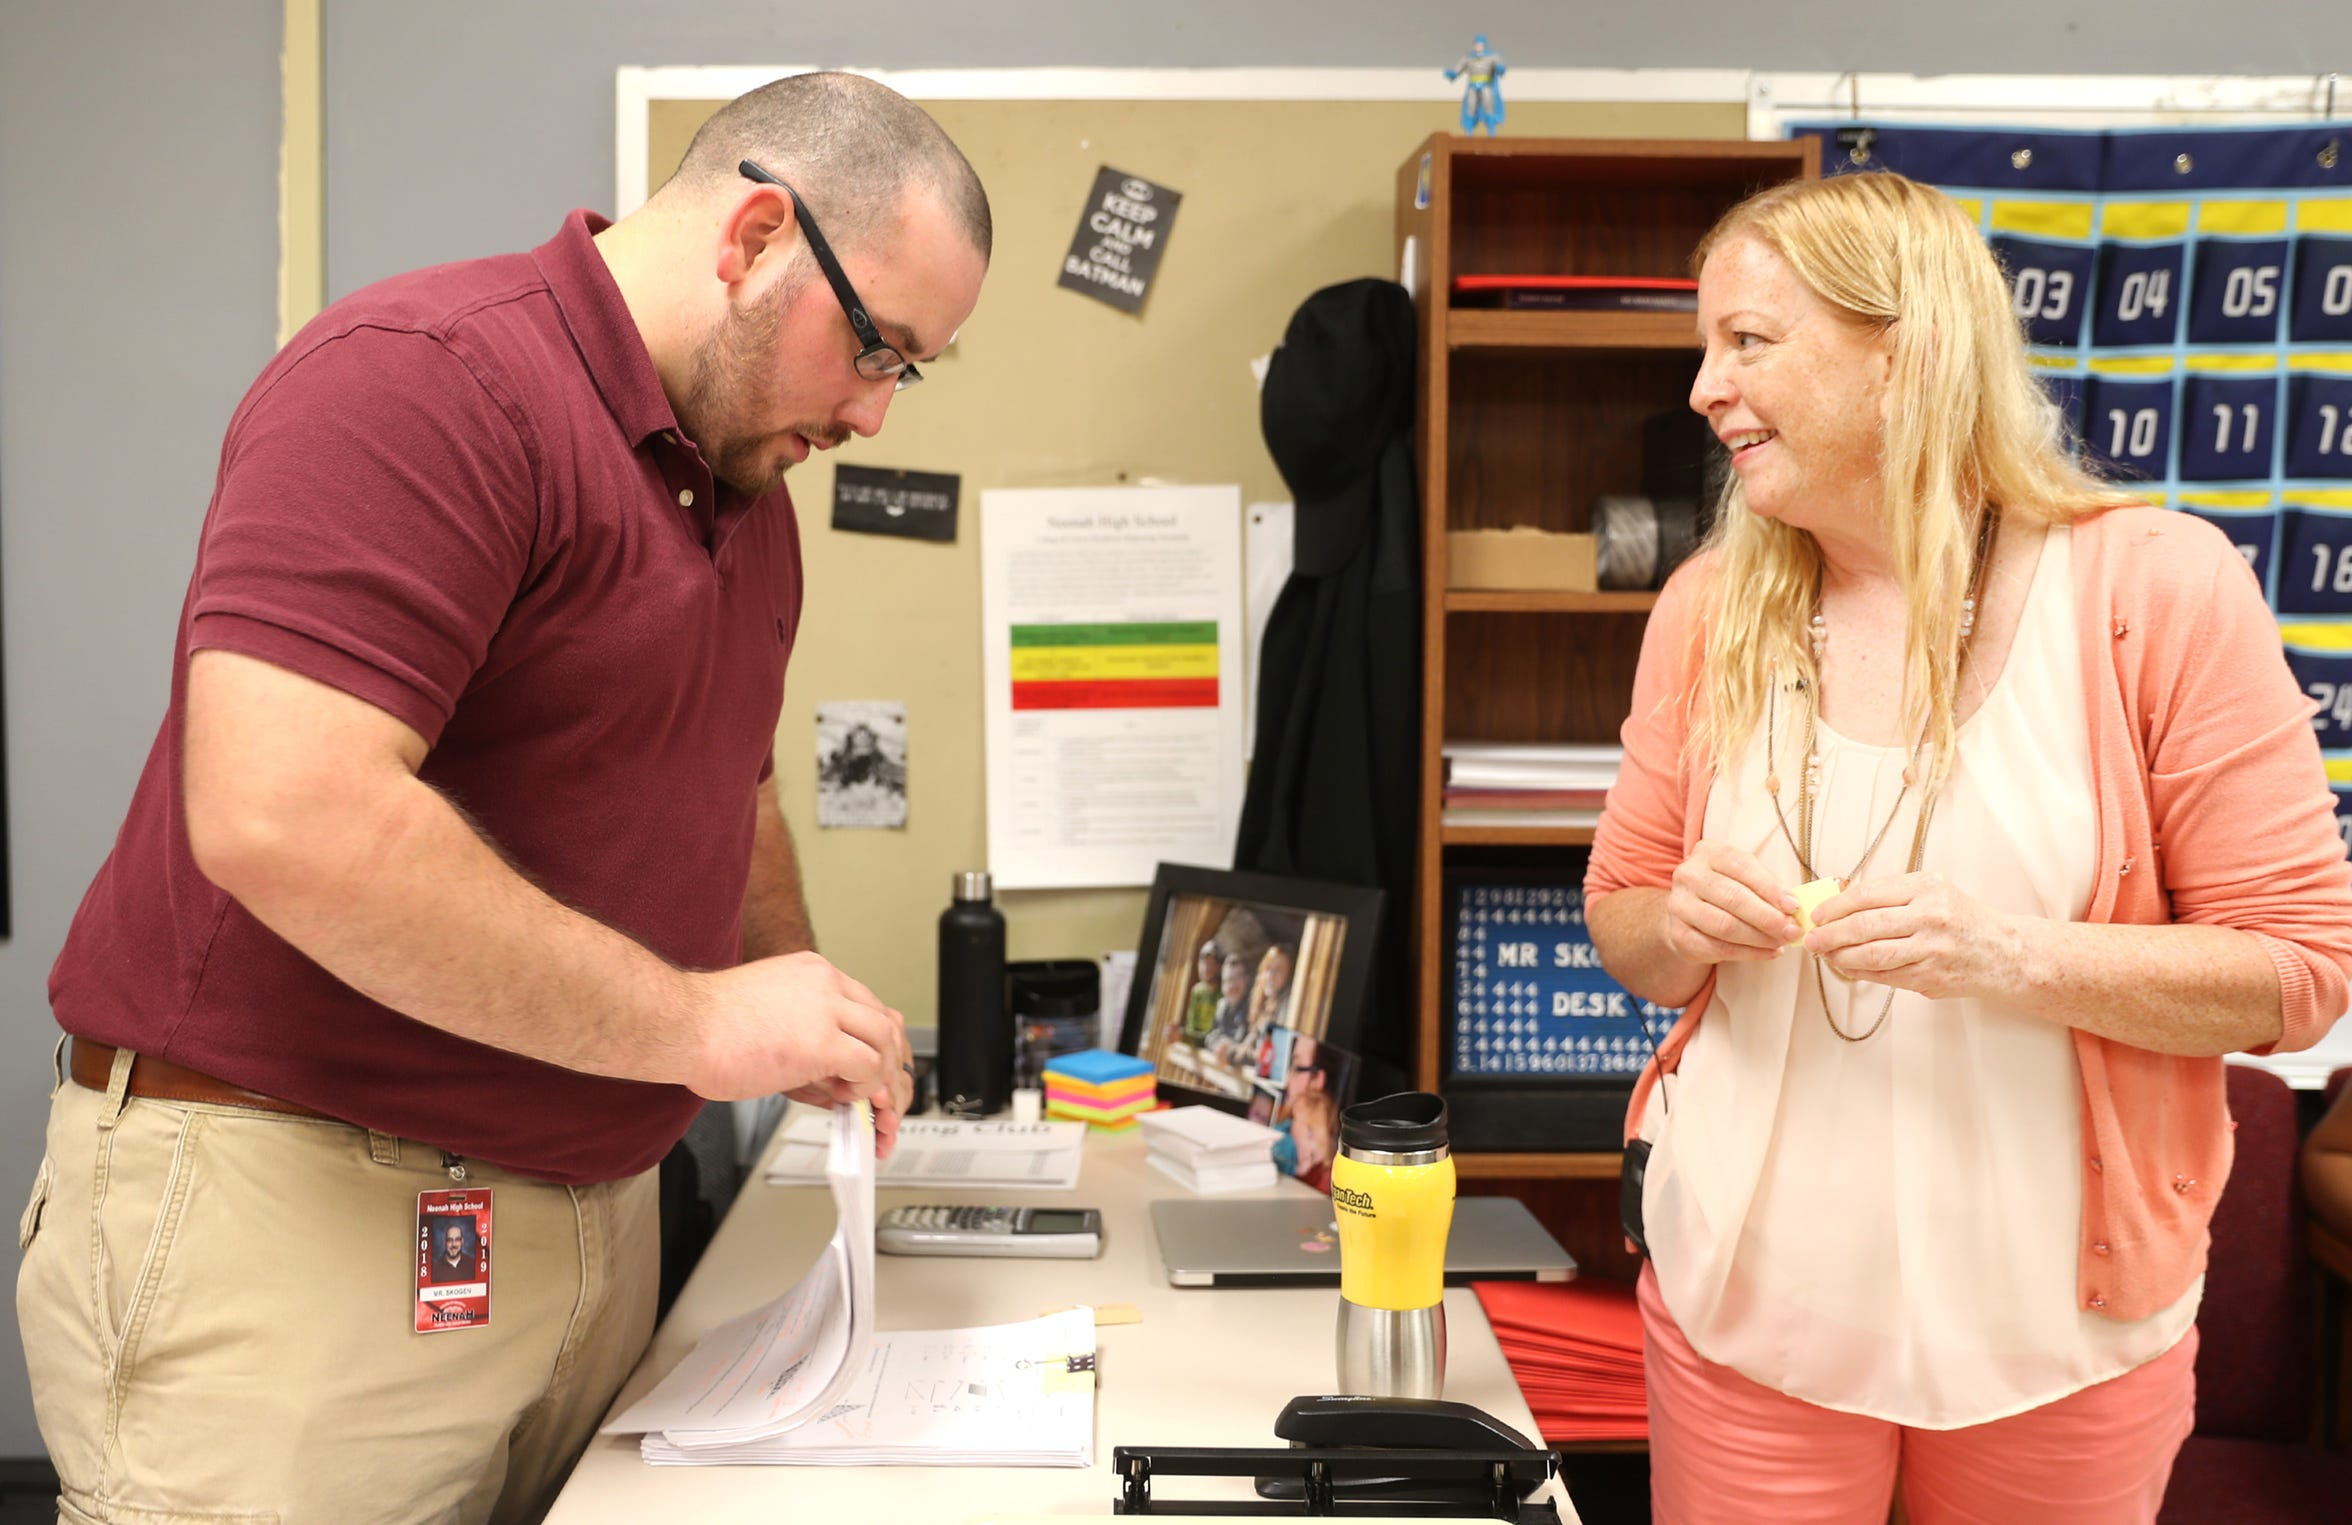 Chris Skogen, a math teacher at Neenah High School, prepares a stack of tests with Maripat Franke, a special education teacher currently enrolled in the Residency In Teacher Education 2.0 program at CESA 6, on Sept. 17, 2018, in Neenah, Wis. Skogen and Franke co-teach the class. Danny Damiani/USA TODAY NETWORK-Wisconsin